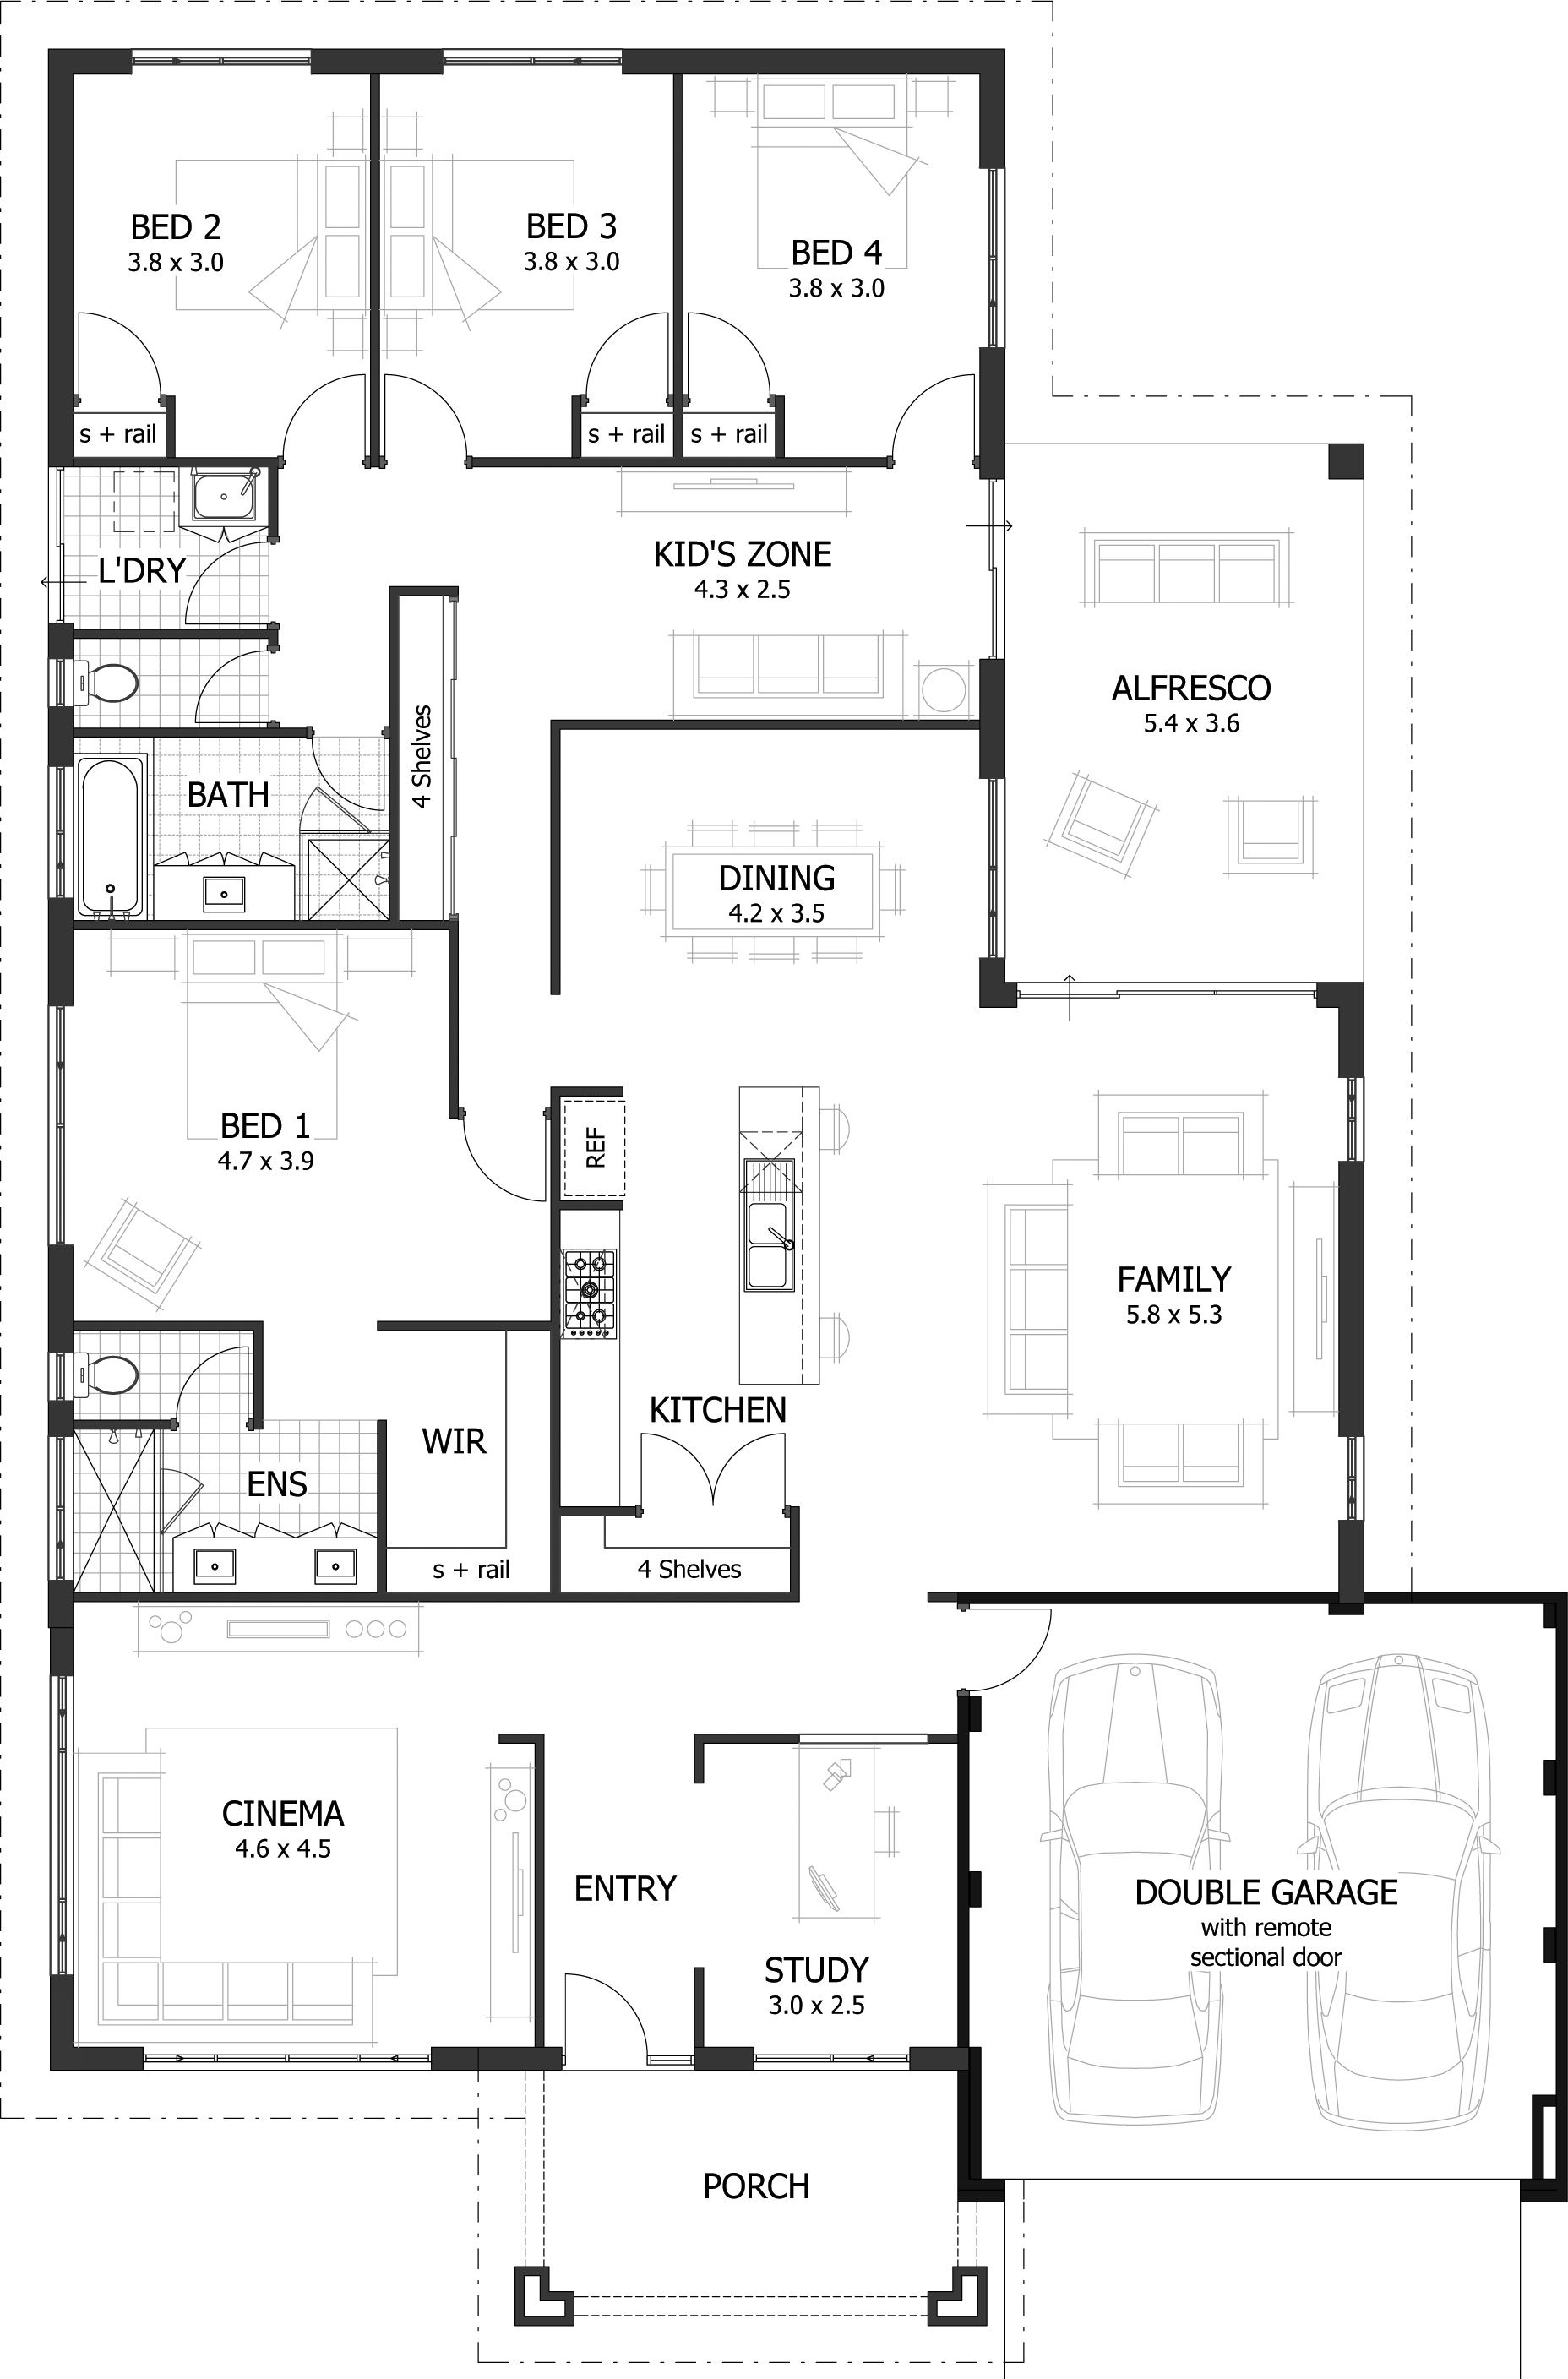 4 bedroom house plans home designs celebration homes floorplans pinterest celebrations Kitchen design lesson plans